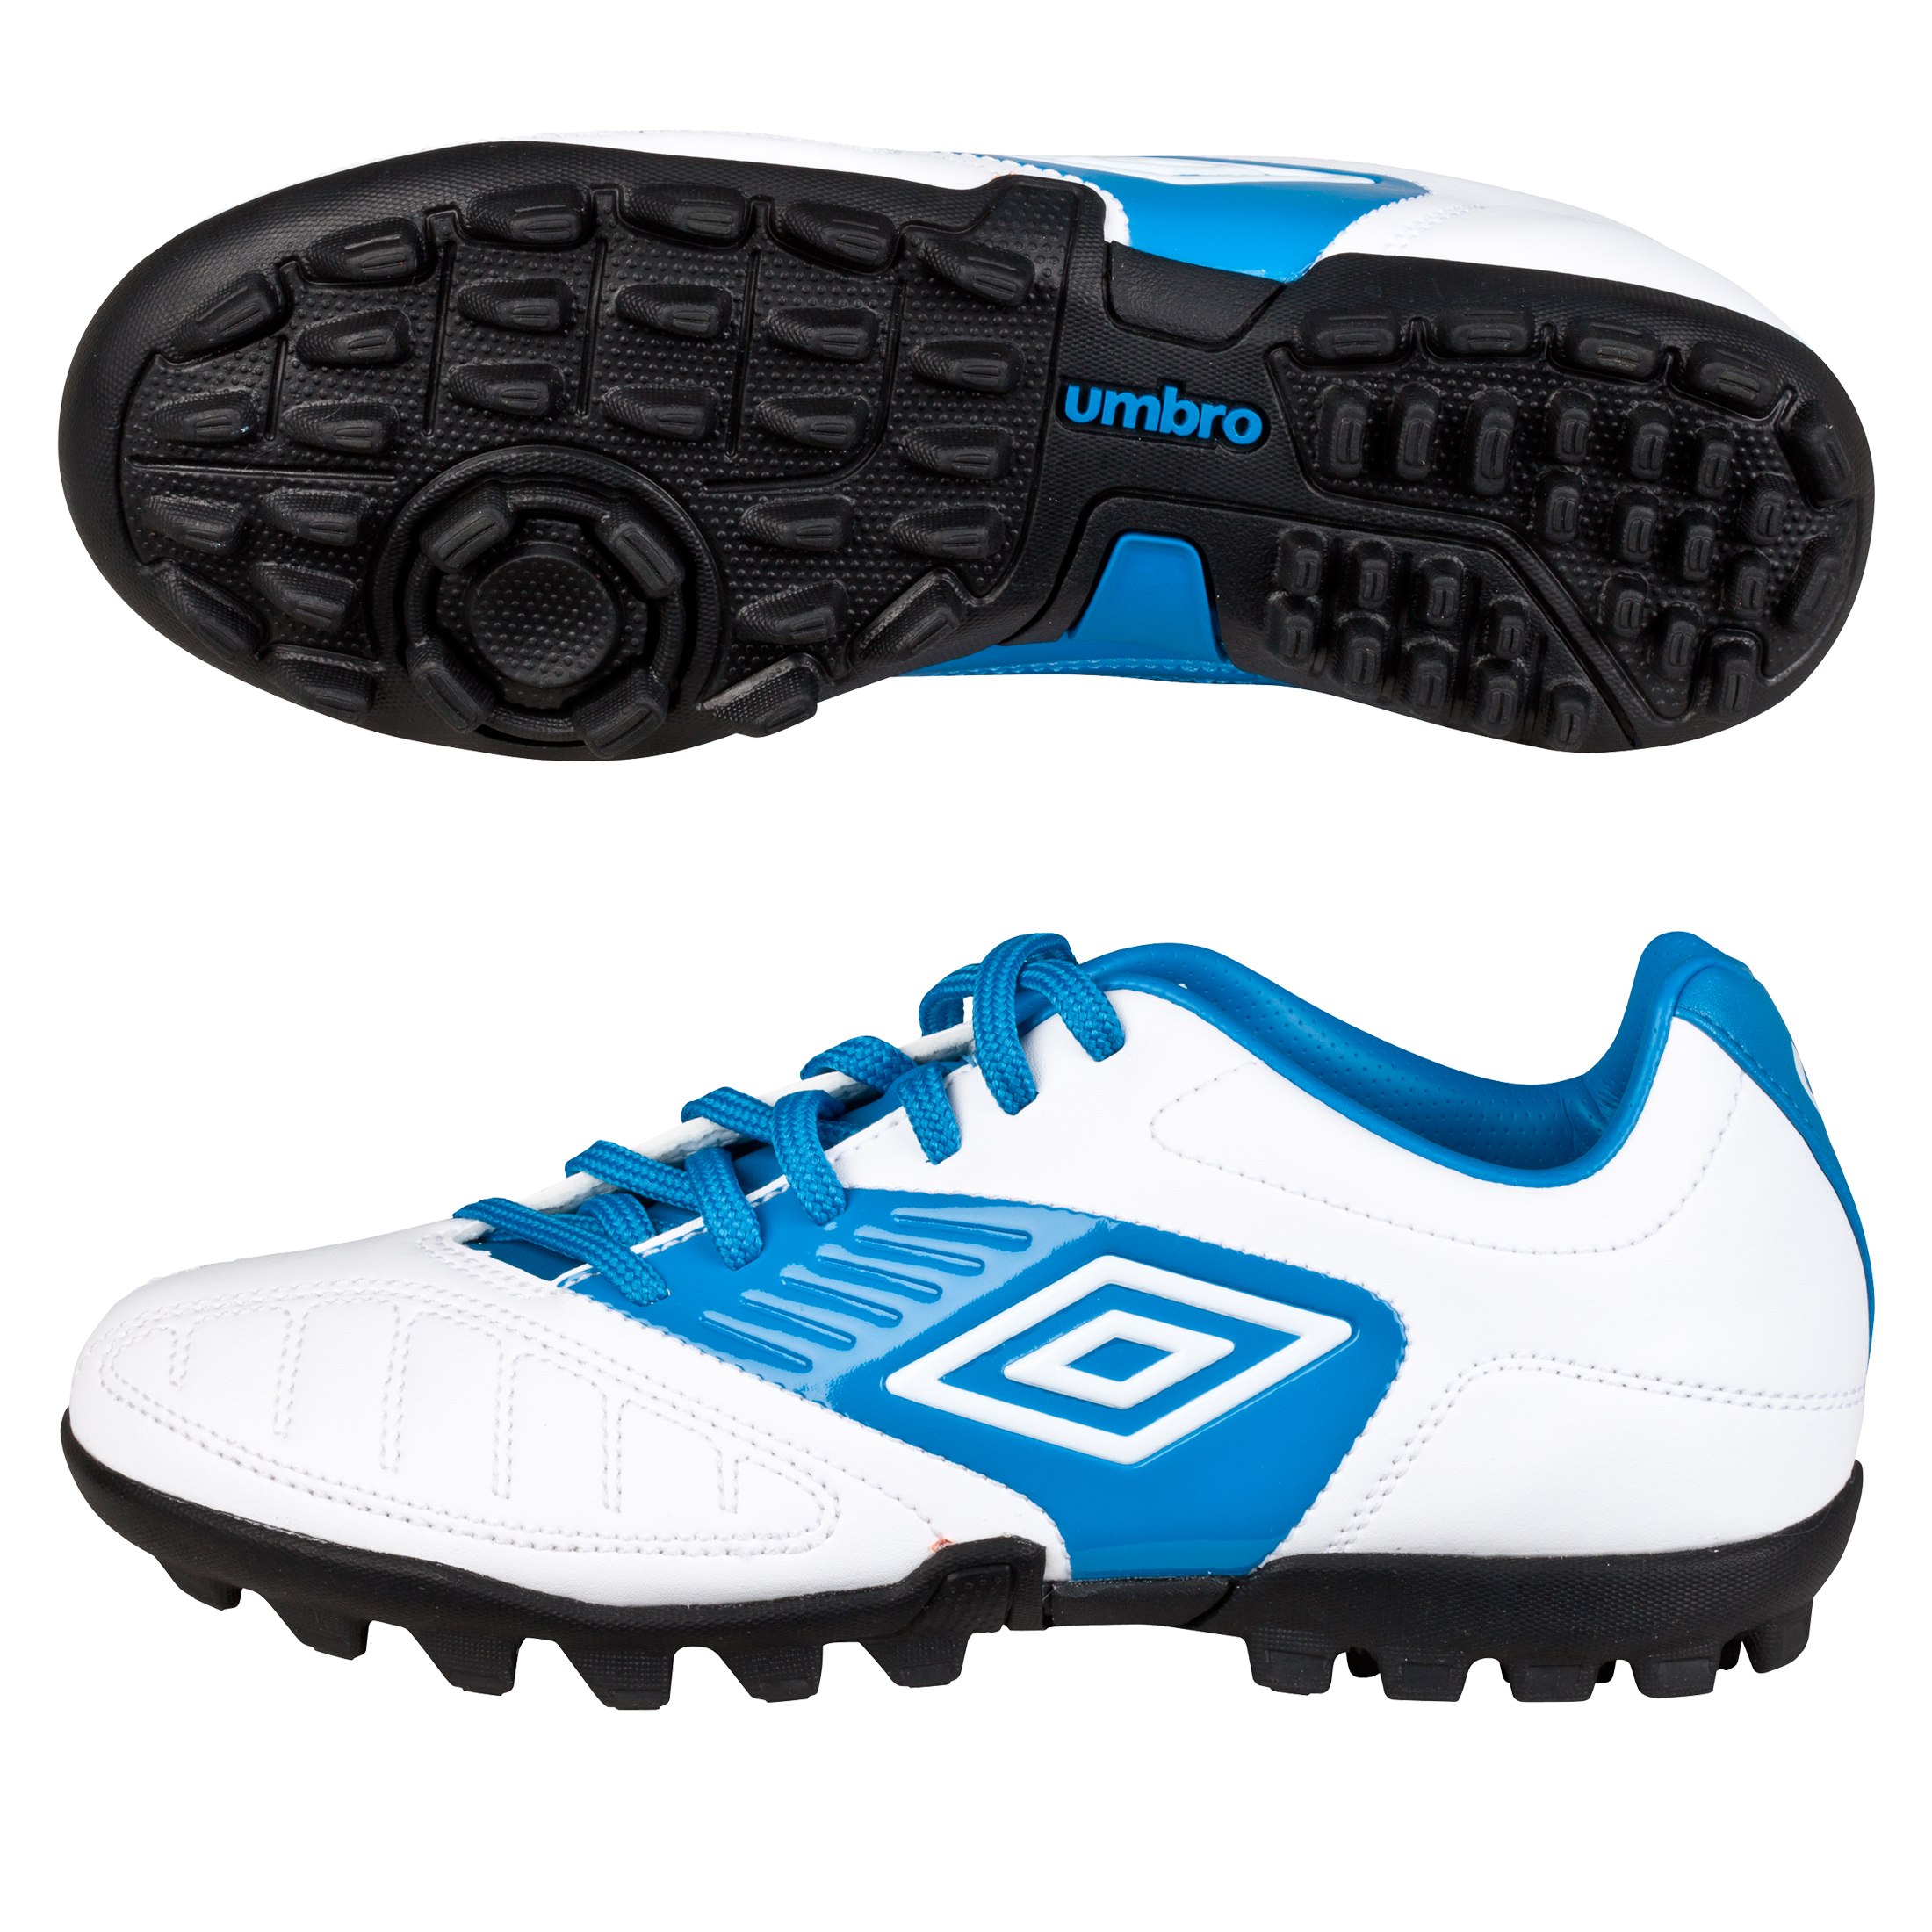 Umbro Geometra Cup Astro Turf Trainers - White/Brilliant Blue/True Red - Kids